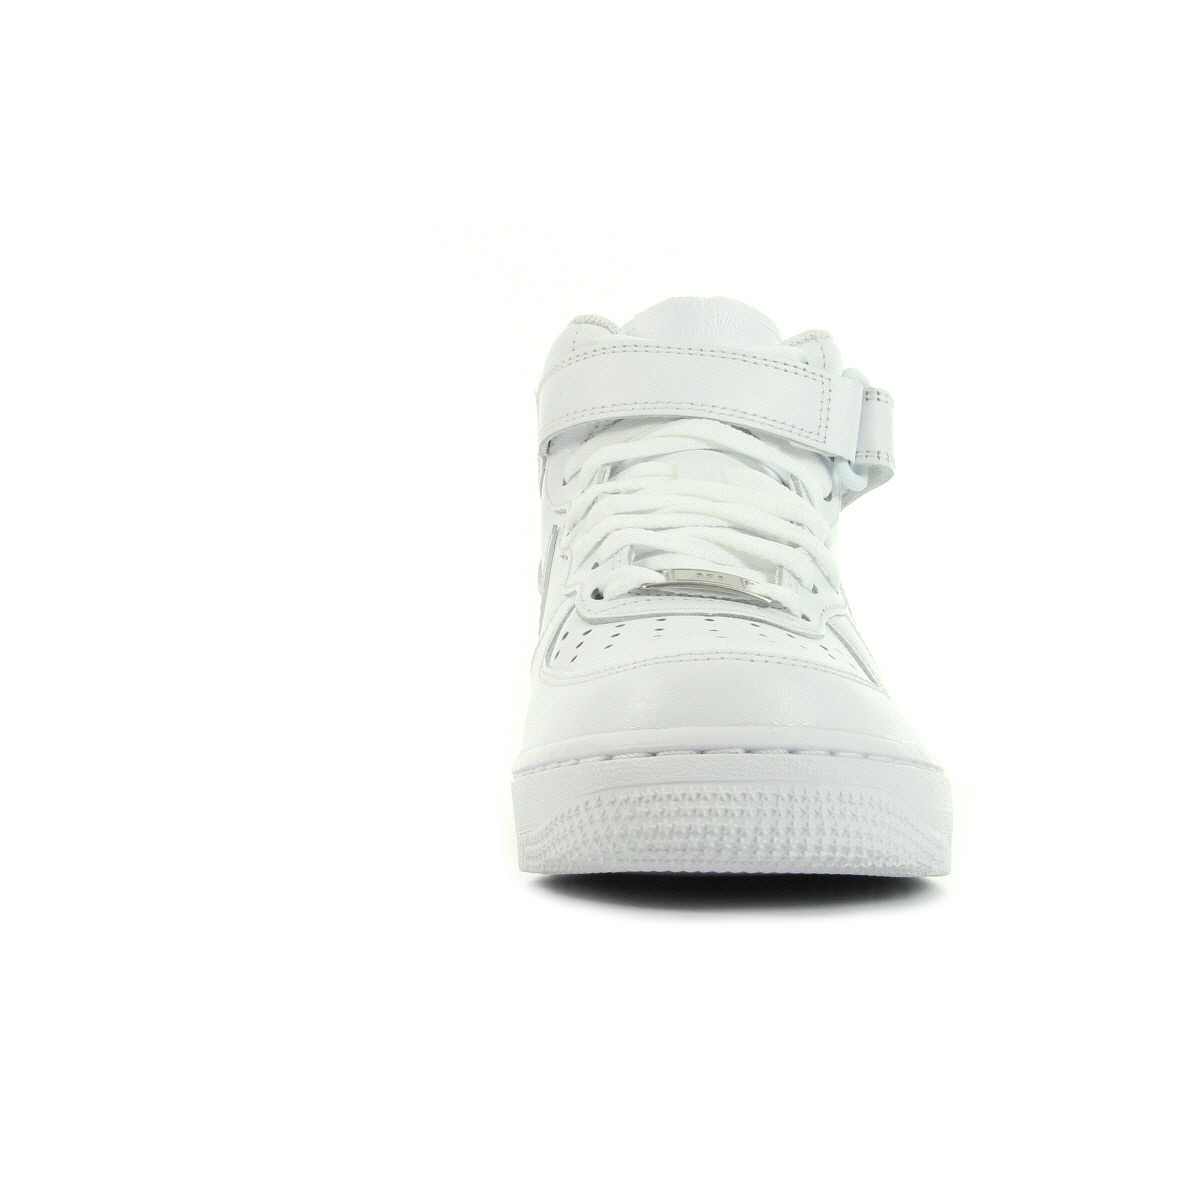 nike air force 1 mid 07 le 366731100 chaussures homme homme